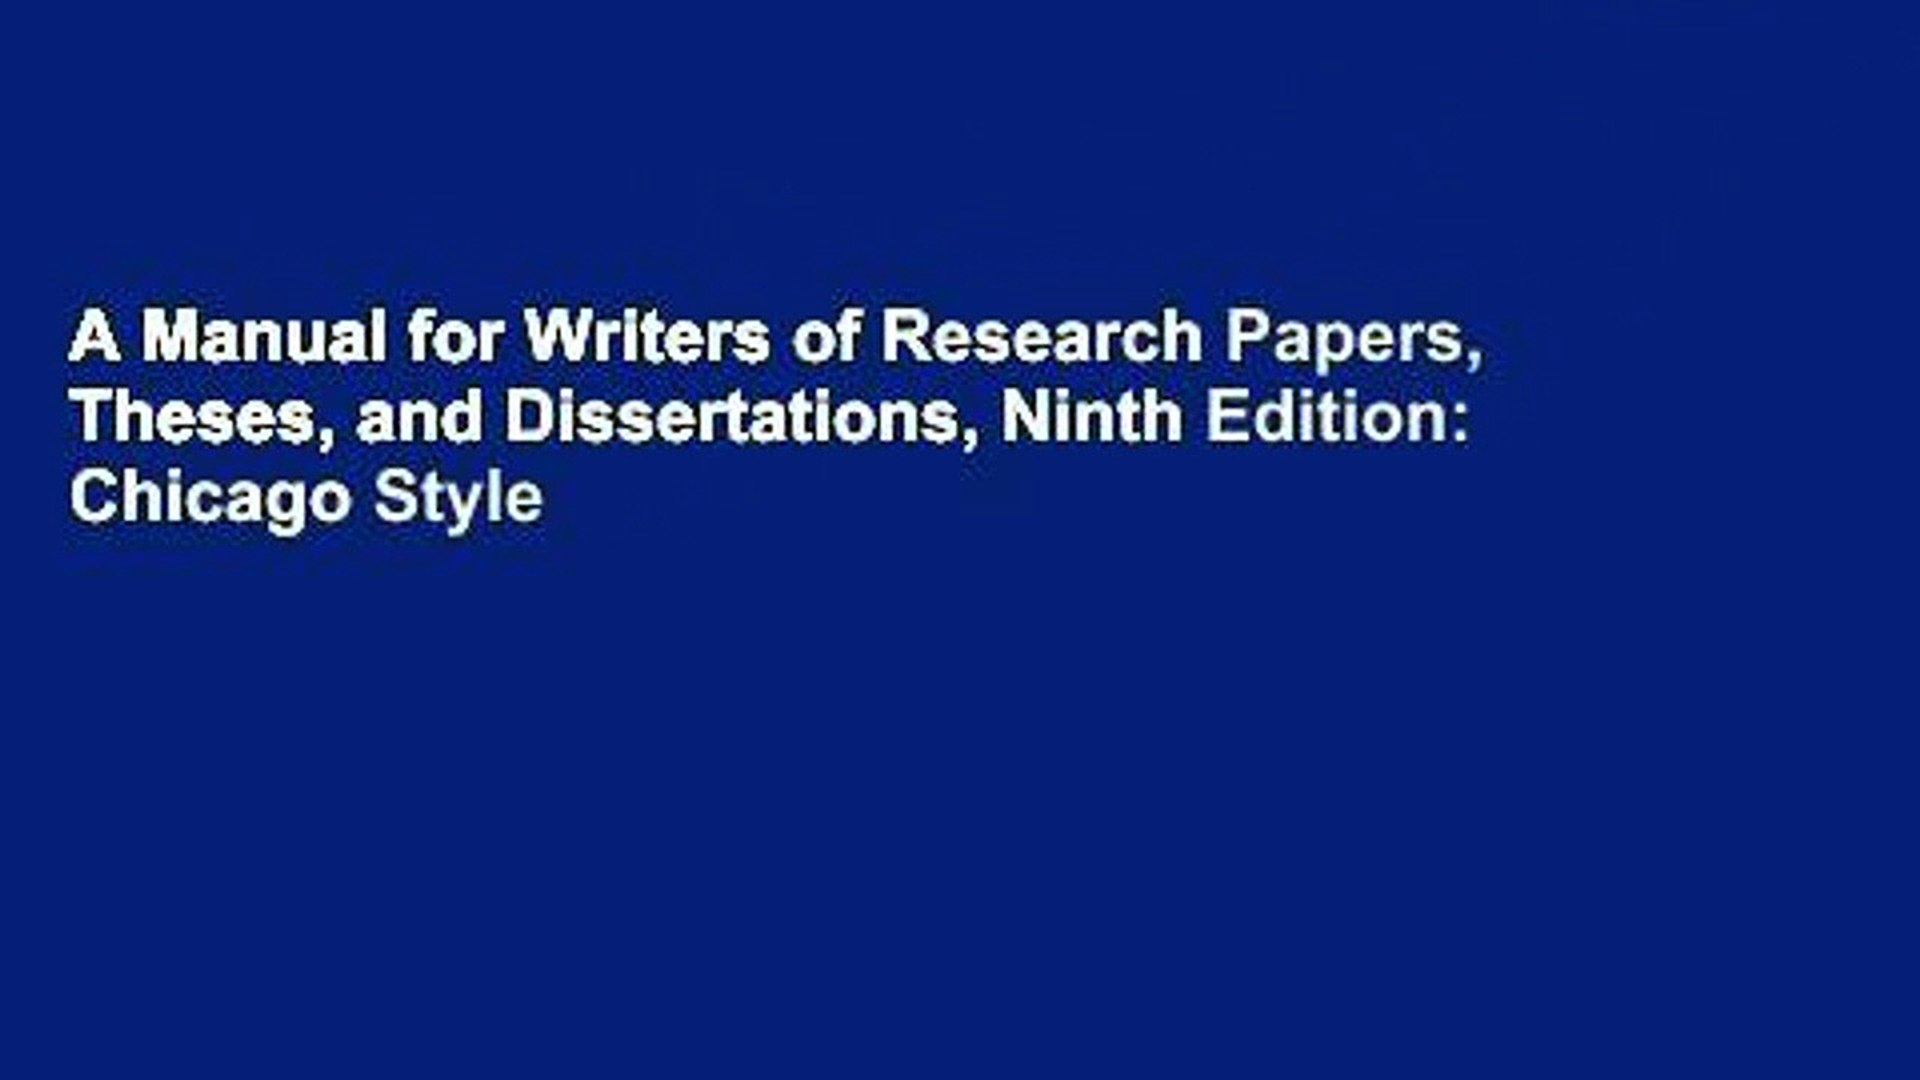 028 Manual For Writers Of Researchs Theses And Dissertations X1080 V4x Sensational A Research Papers Ed. 8 Turabian Ninth Edition Full